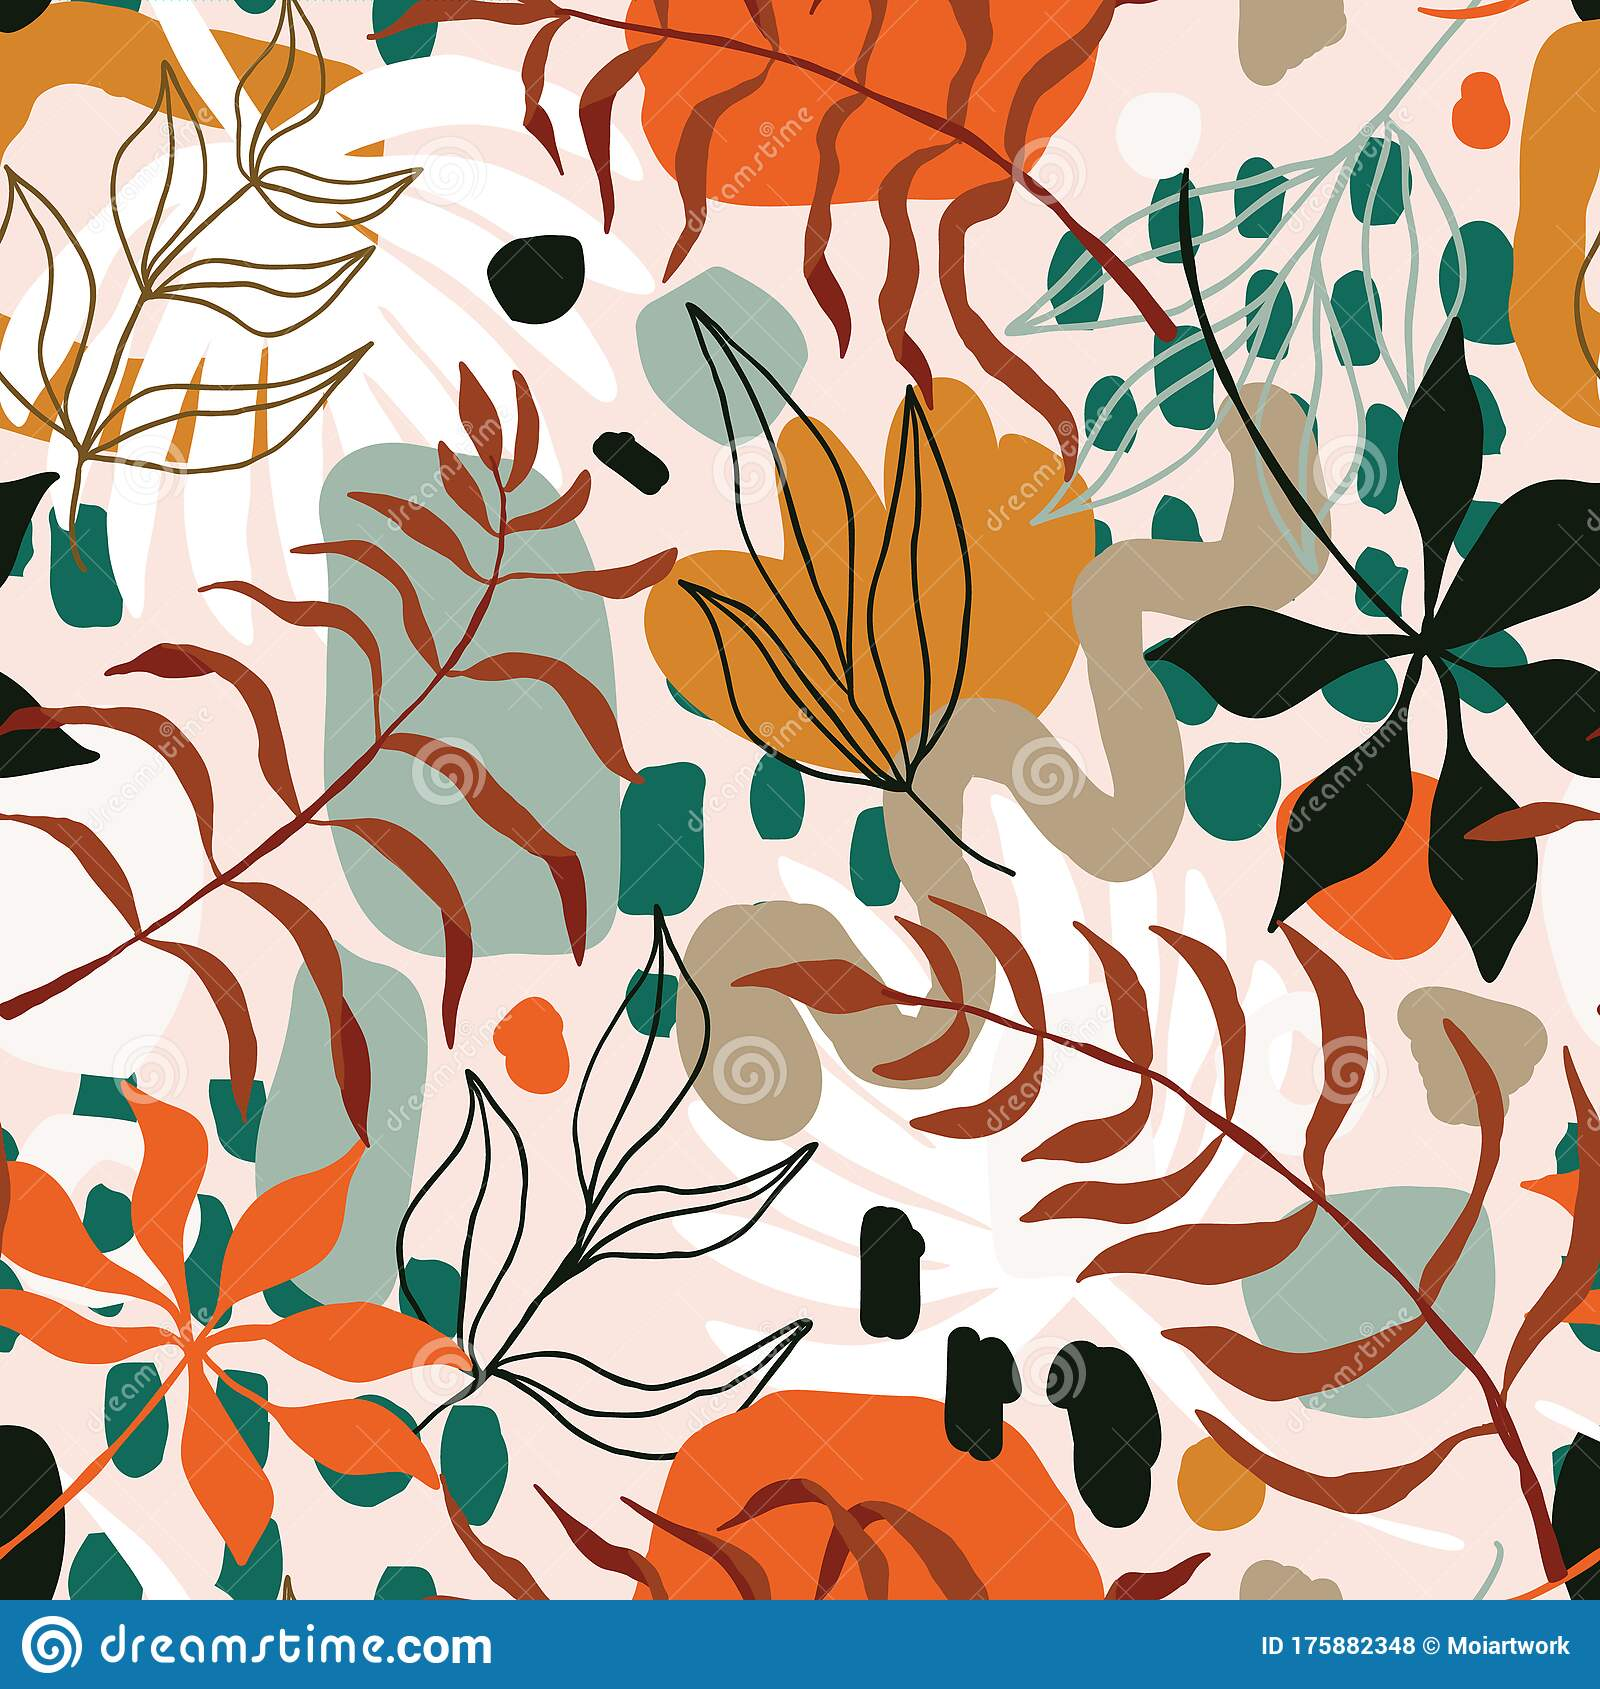 Trendy Seamless Pattern With Interesting Tropical Leaves Stock Vector Illustration Of Exotic Aesthetic 175882348 Collection by shea marie • last updated 6 weeks ago. dreamstime com